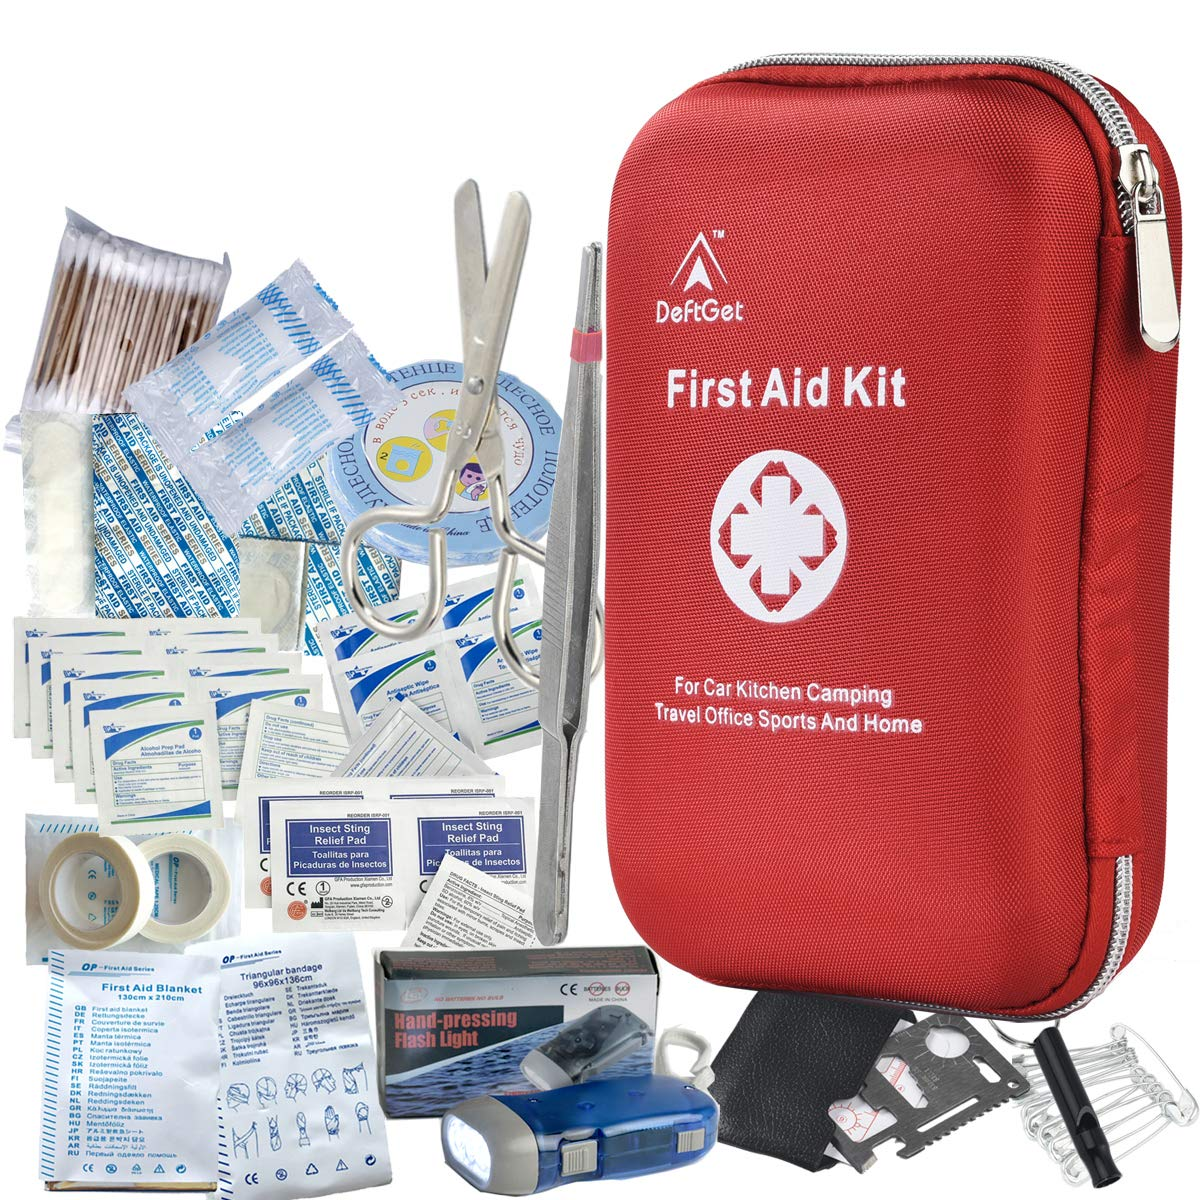 DeftGet First Aid Kit - 163 Piece Waterproof Portable Essential Injuries & Red Cross Medical Emergency Equipment Kits : for Car Kitchen Camping Travel Office Sports and Home by DeftGet